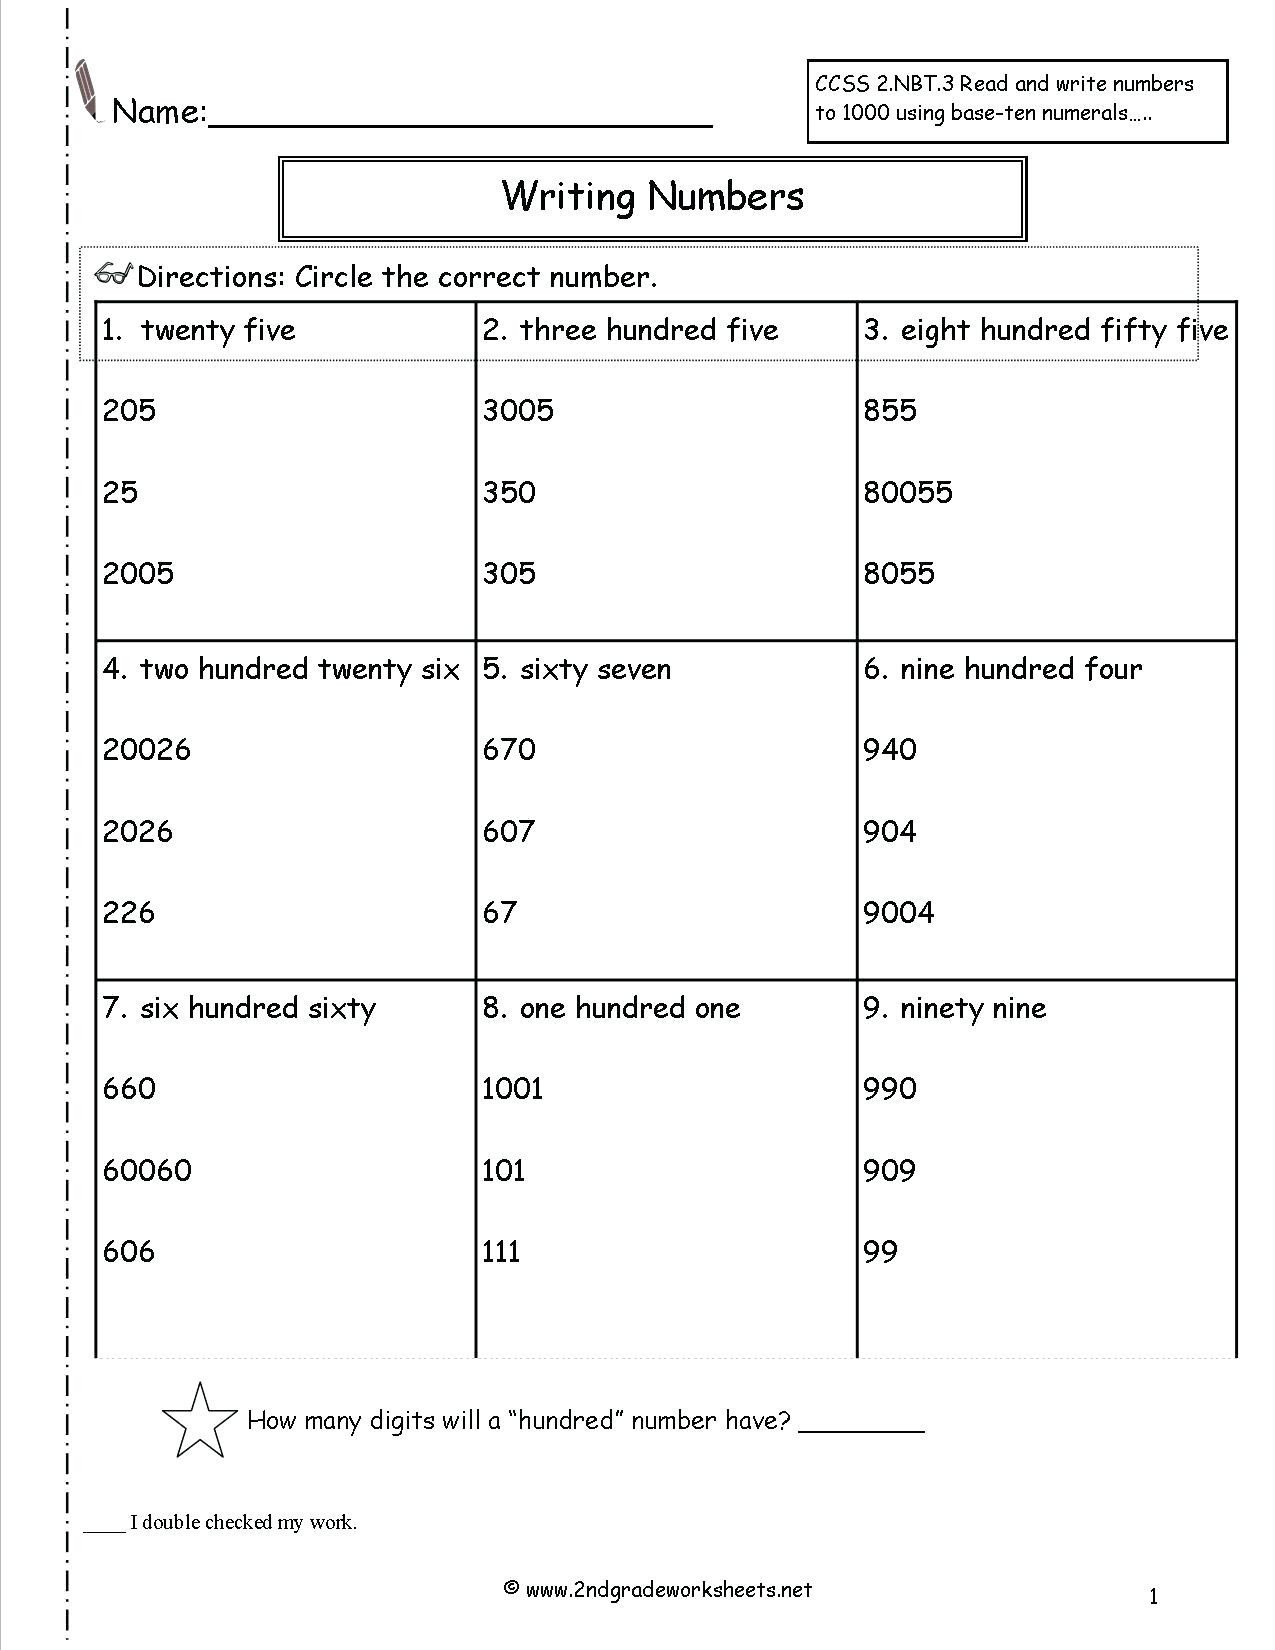 Russian Math Worksheets 4 Free Math Worksheets Second Grade 2 Subtraction Subtract 2